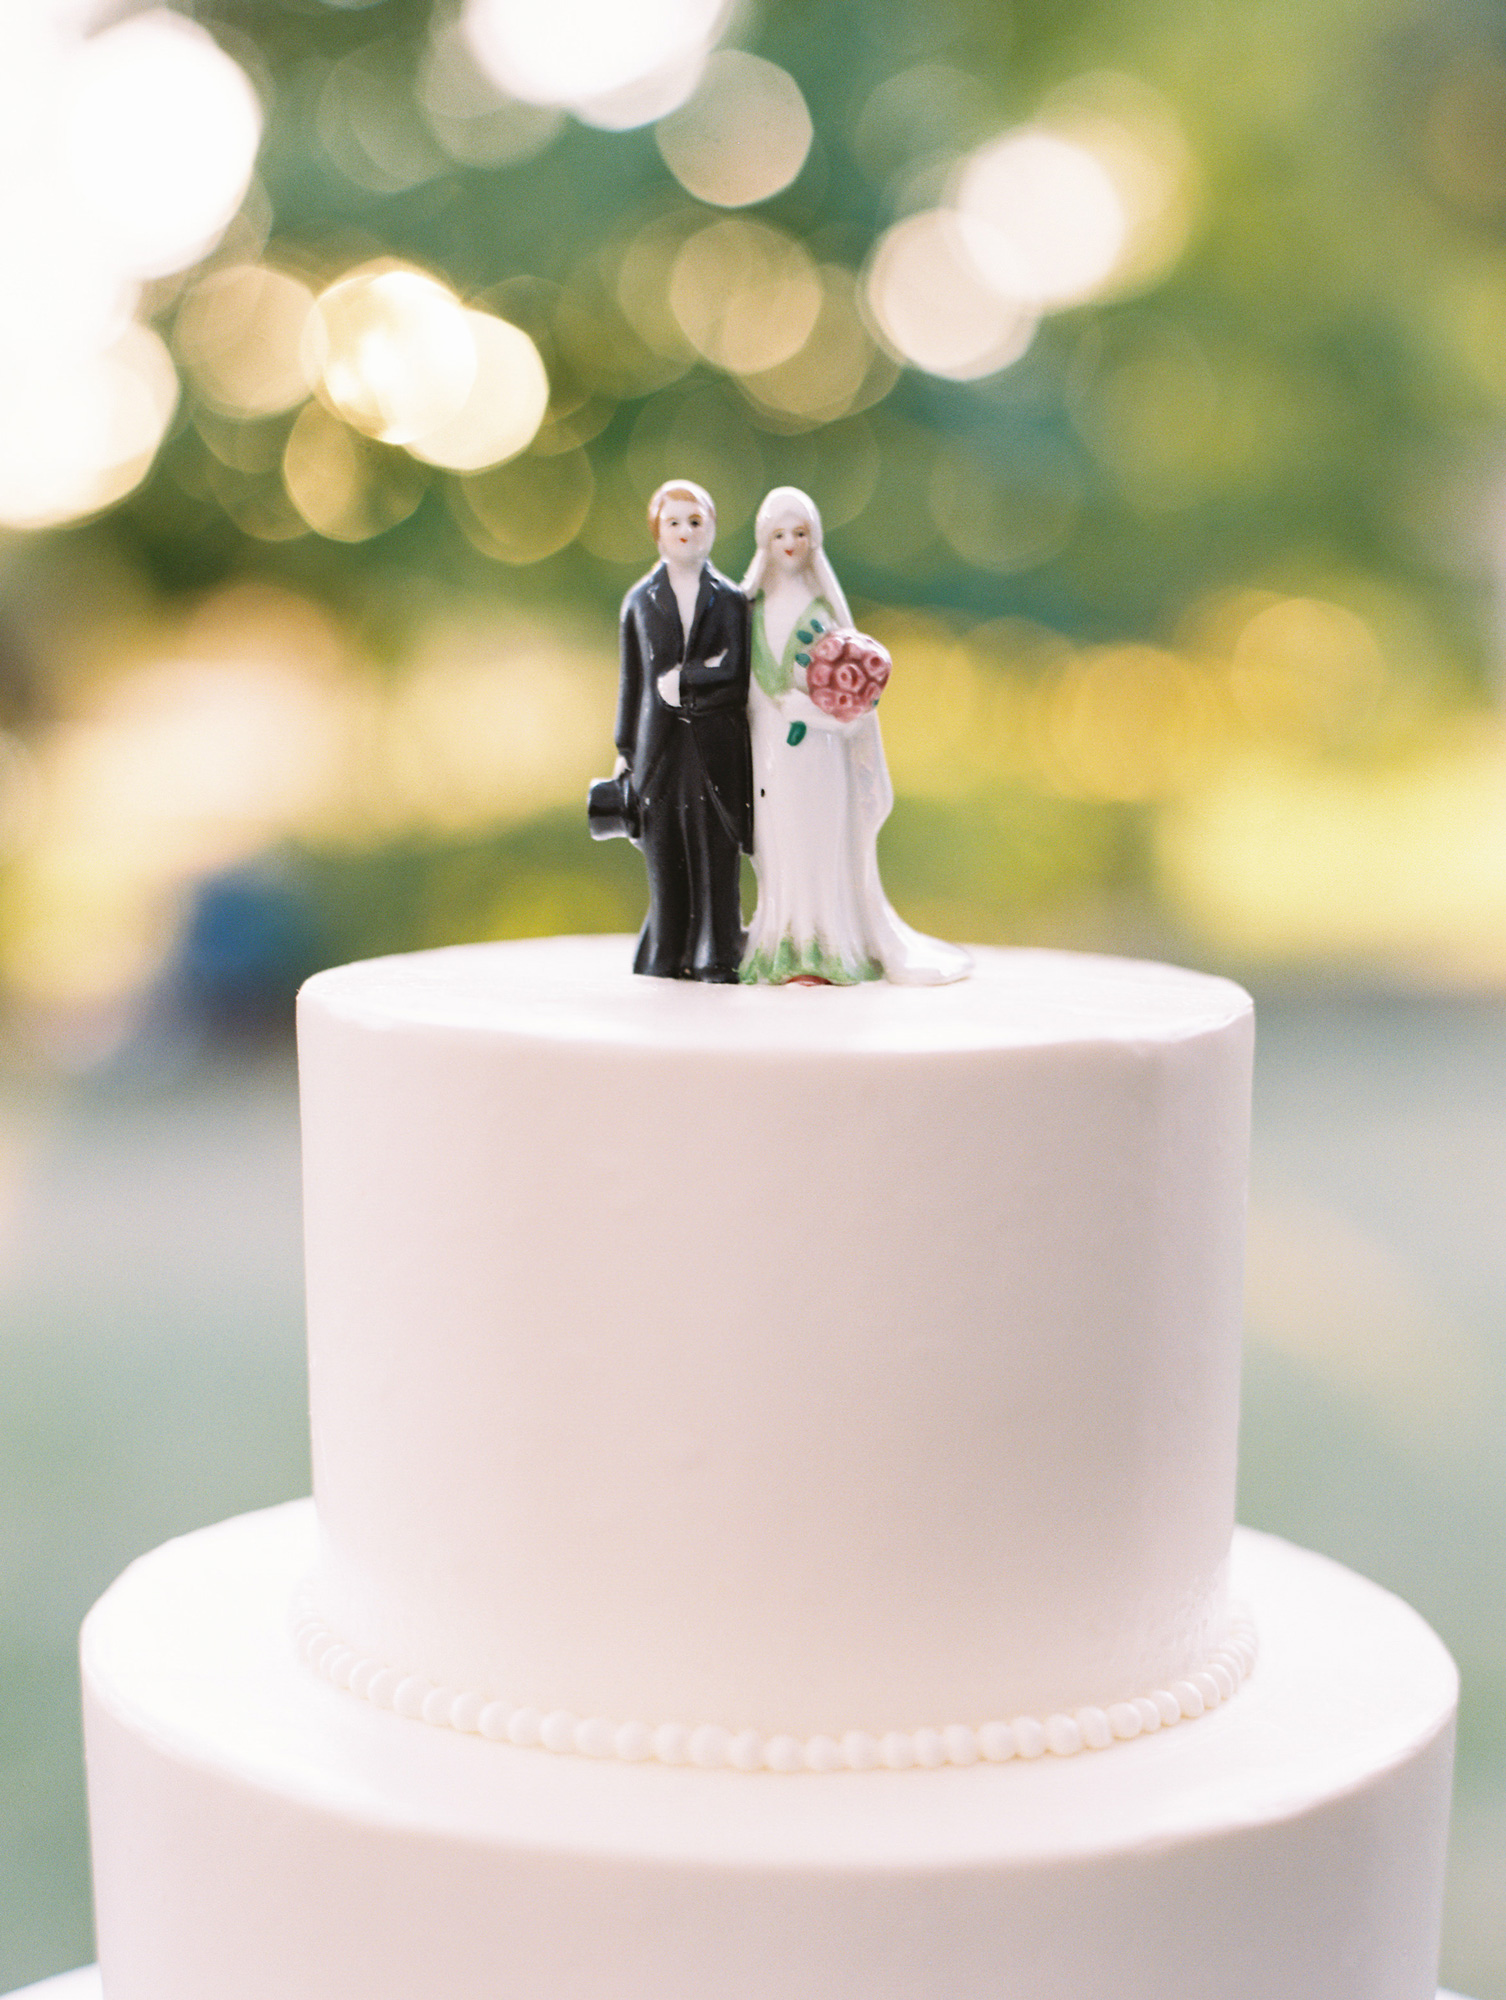 top tier of white wedding cake bride and groom topper